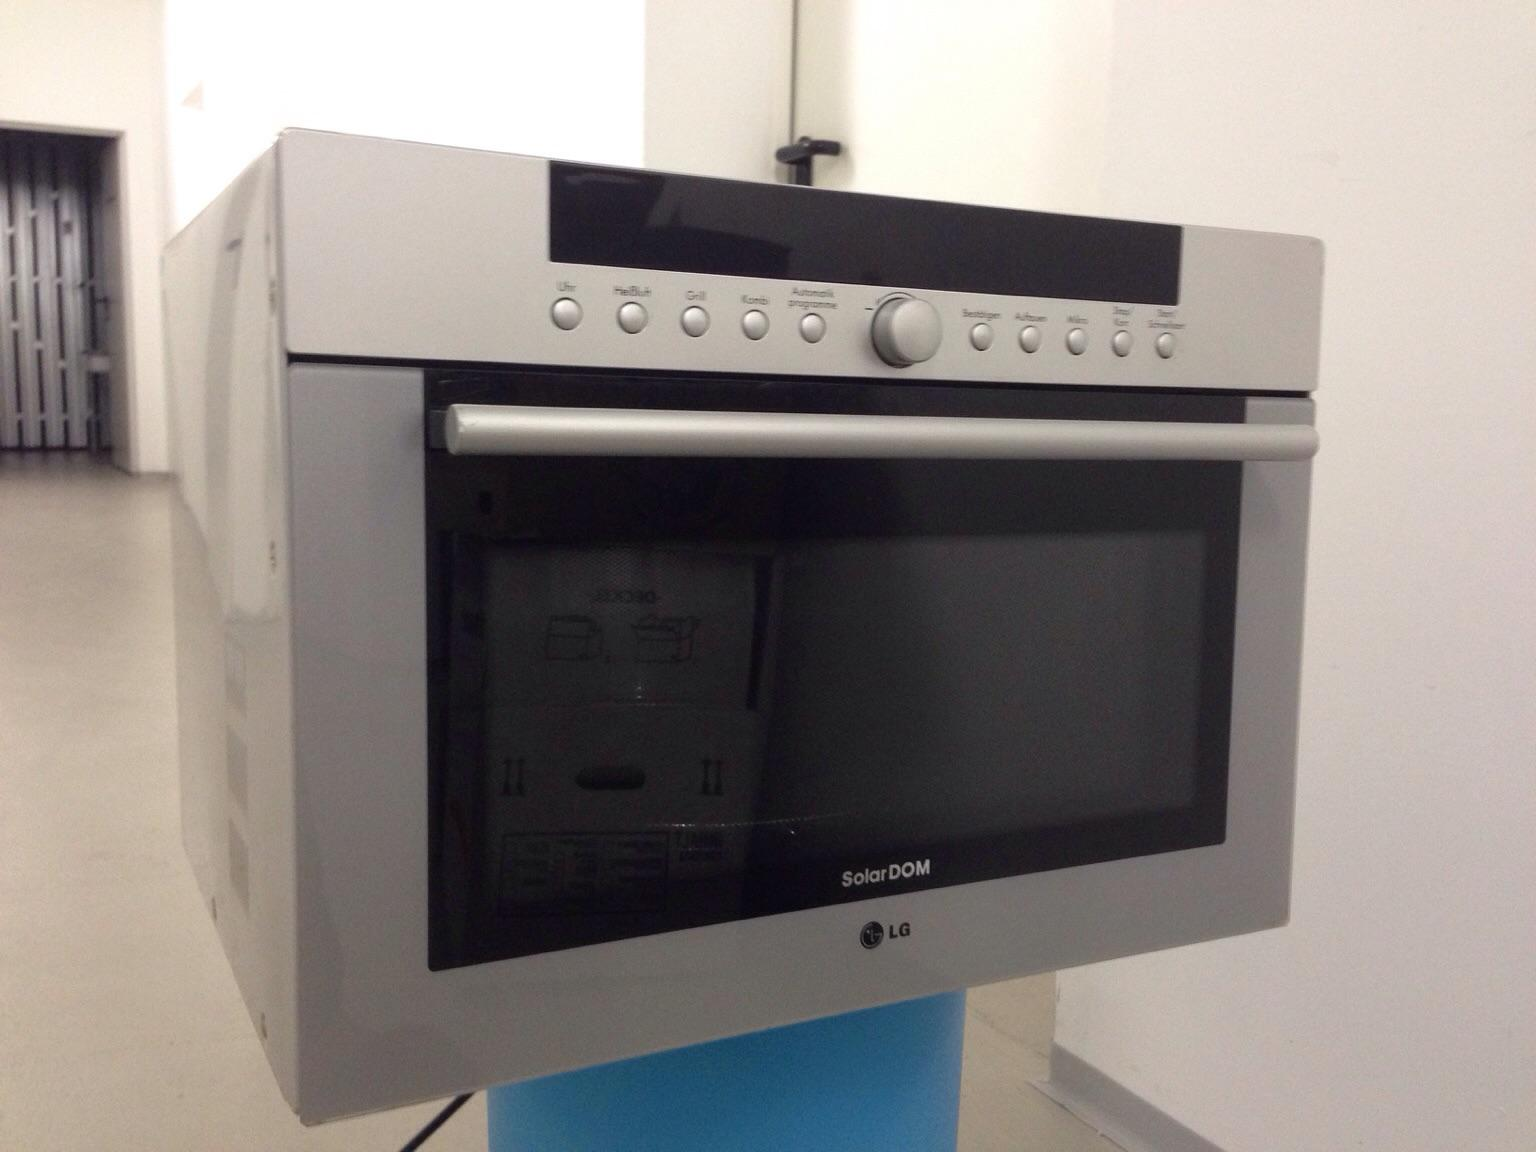 Backofen Mikrowelle Von Lg In 95444 Bayreuth For 20 00 Shpock